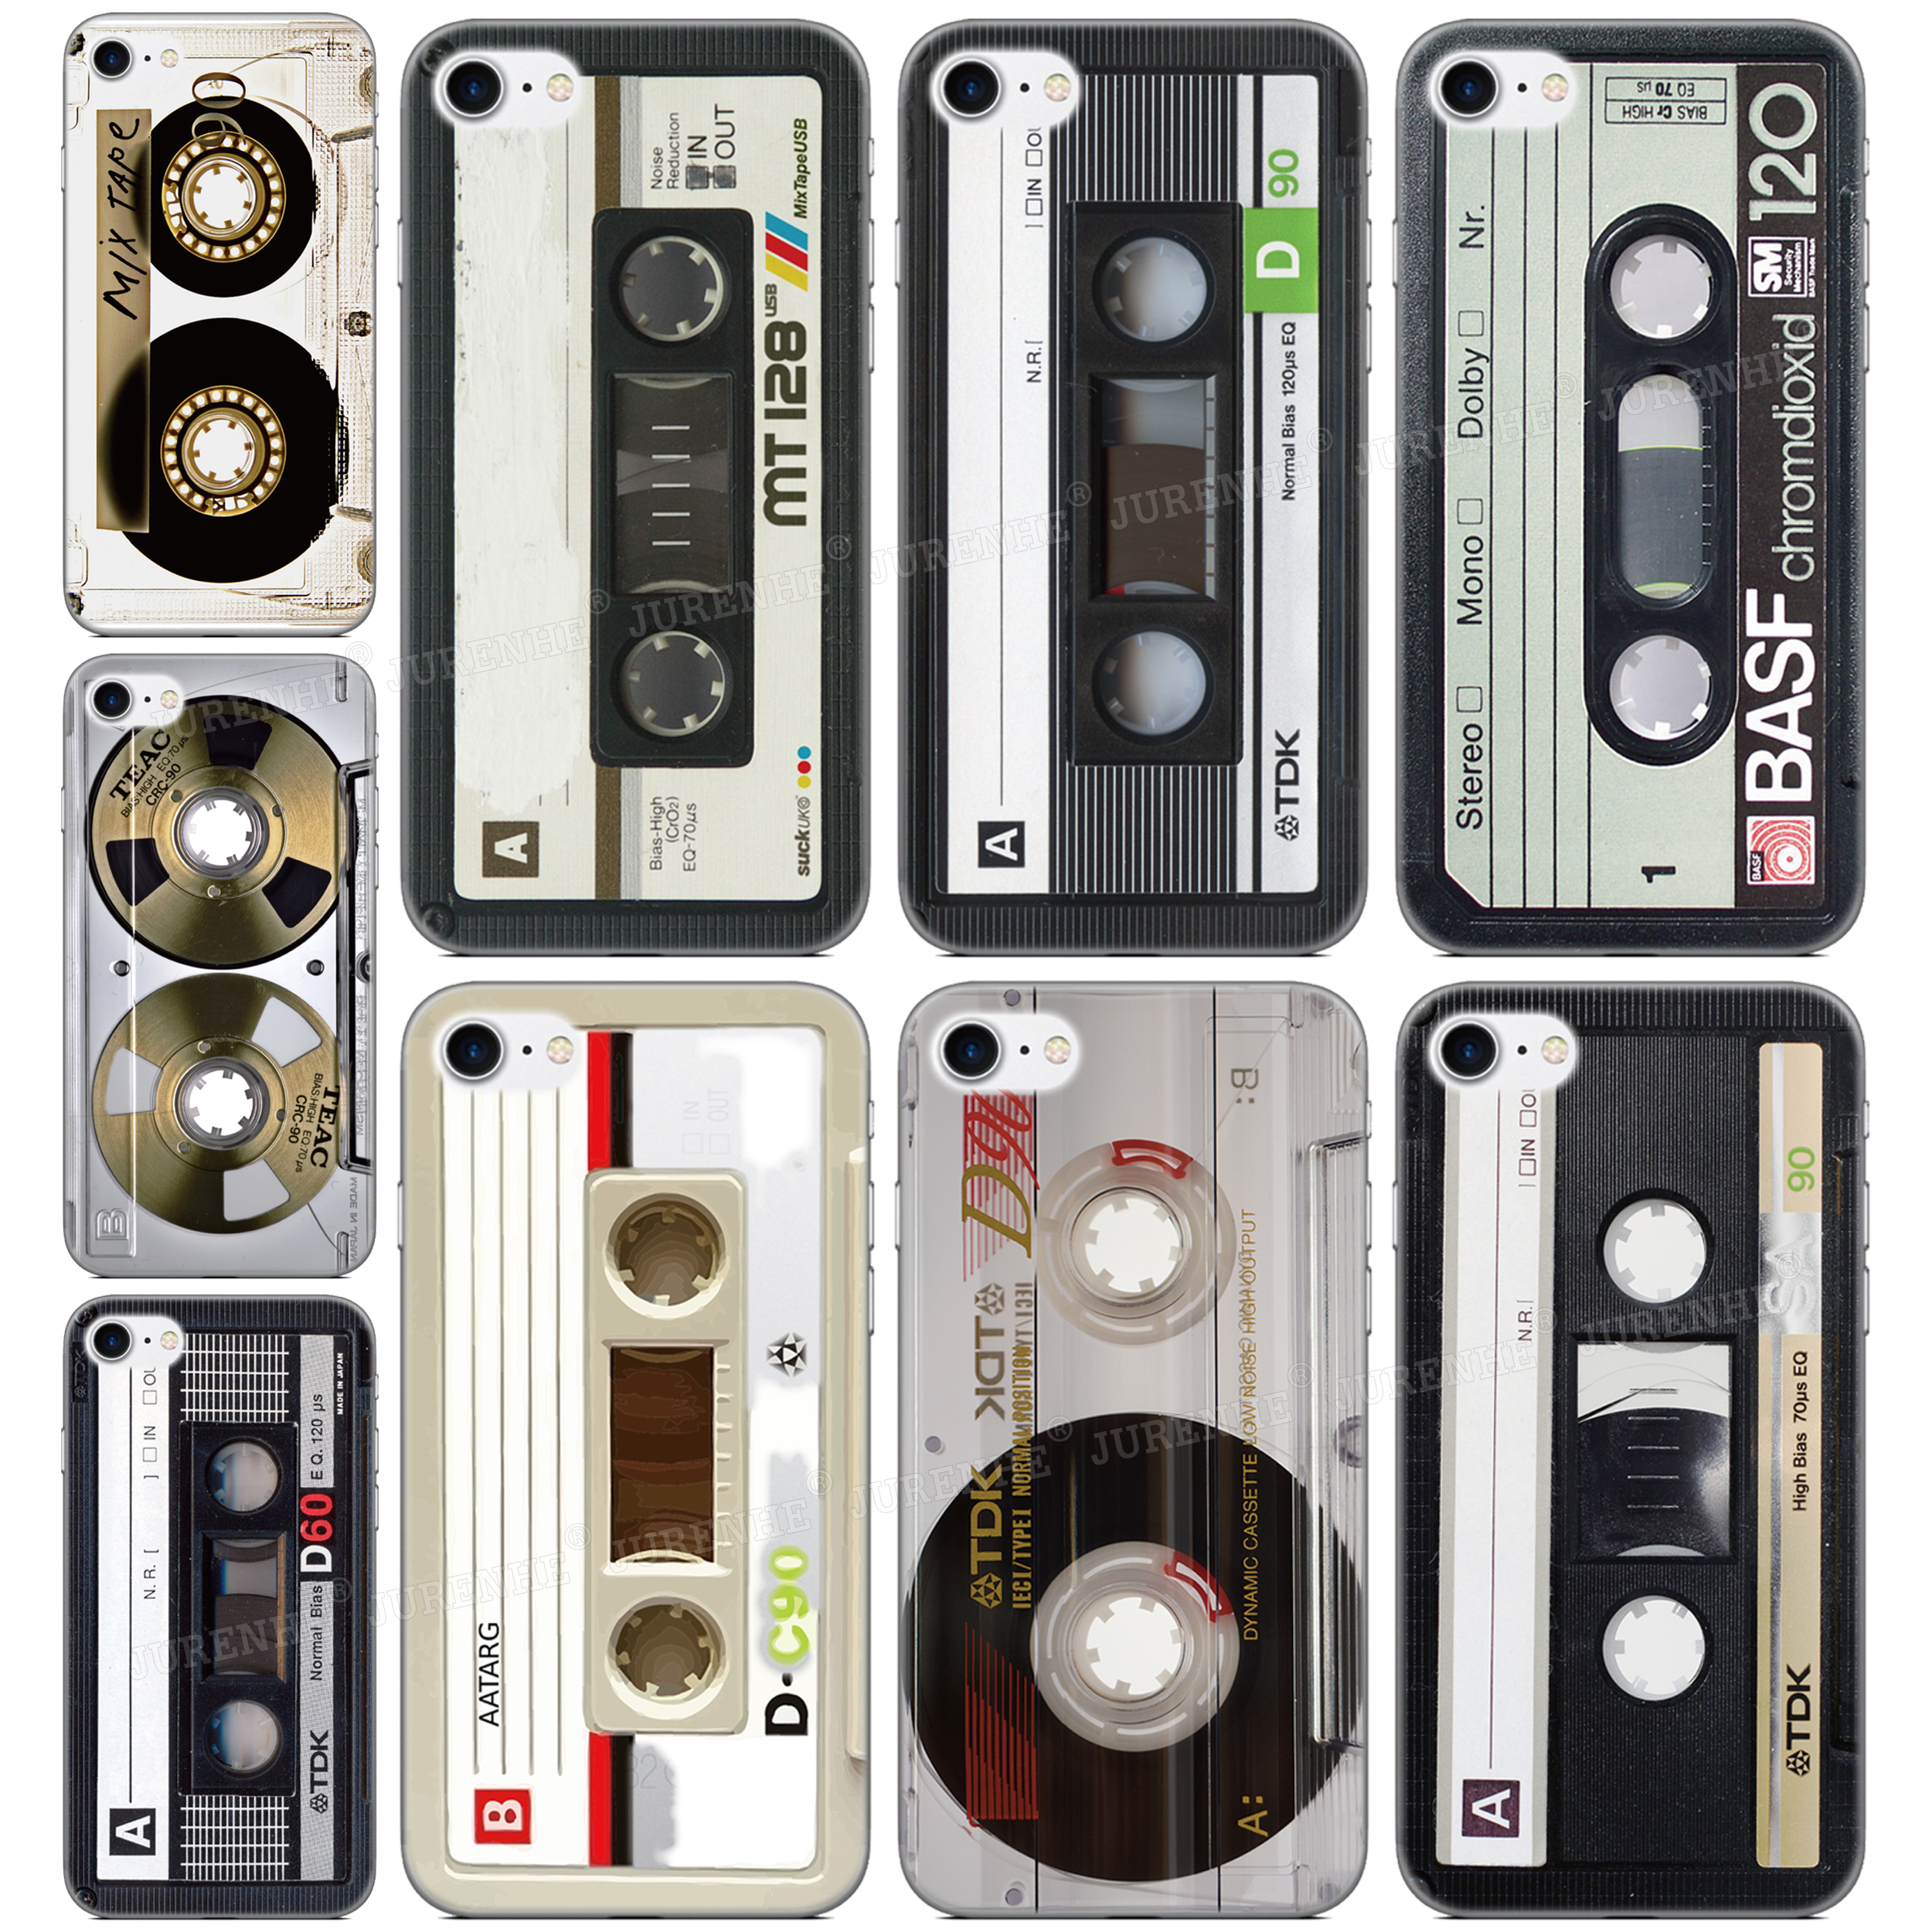 Music Tape Phone <font><b>Case</b></font> For <font><b>OPPO</b></font> Realme X50 5 6 Find X2 Reno A Ace 3 Pro K1 A92S A91 F15 A52 A72 AX7 A5S A31 A8 <font><b>A9</b></font> <font><b>A5</b></font> <font><b>2020</b></font> Cover image